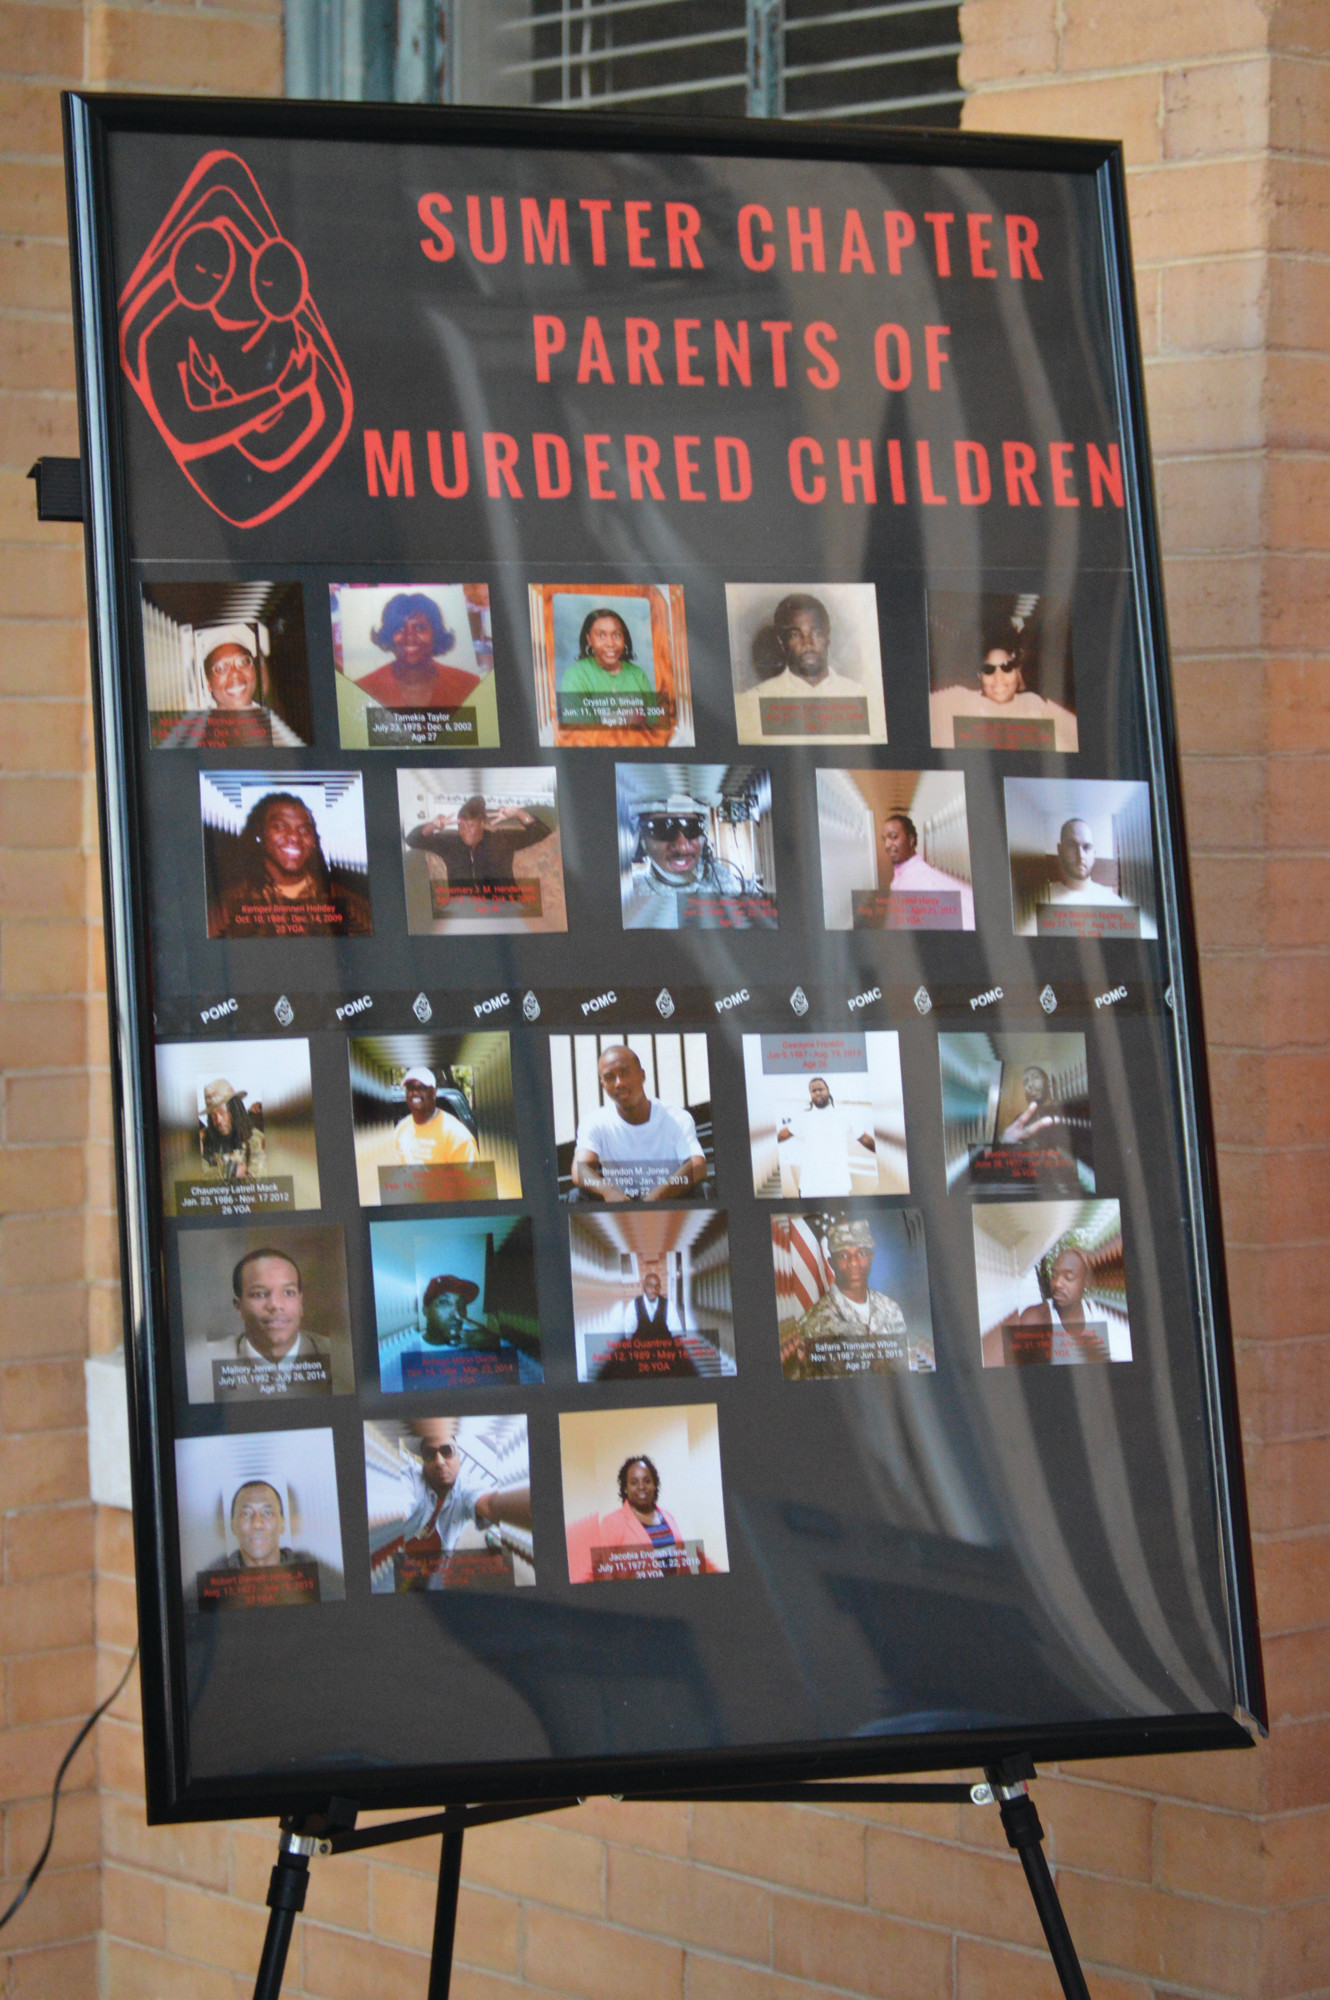 A wall of pictures was displayed during the 2017 A Day of Remembrance ceremony on Thursday. The photos showed the loved ones of members of Sumter Chapter Parents of Murdered Children who were killed. The wall started with 3 pictures and now includes 23.